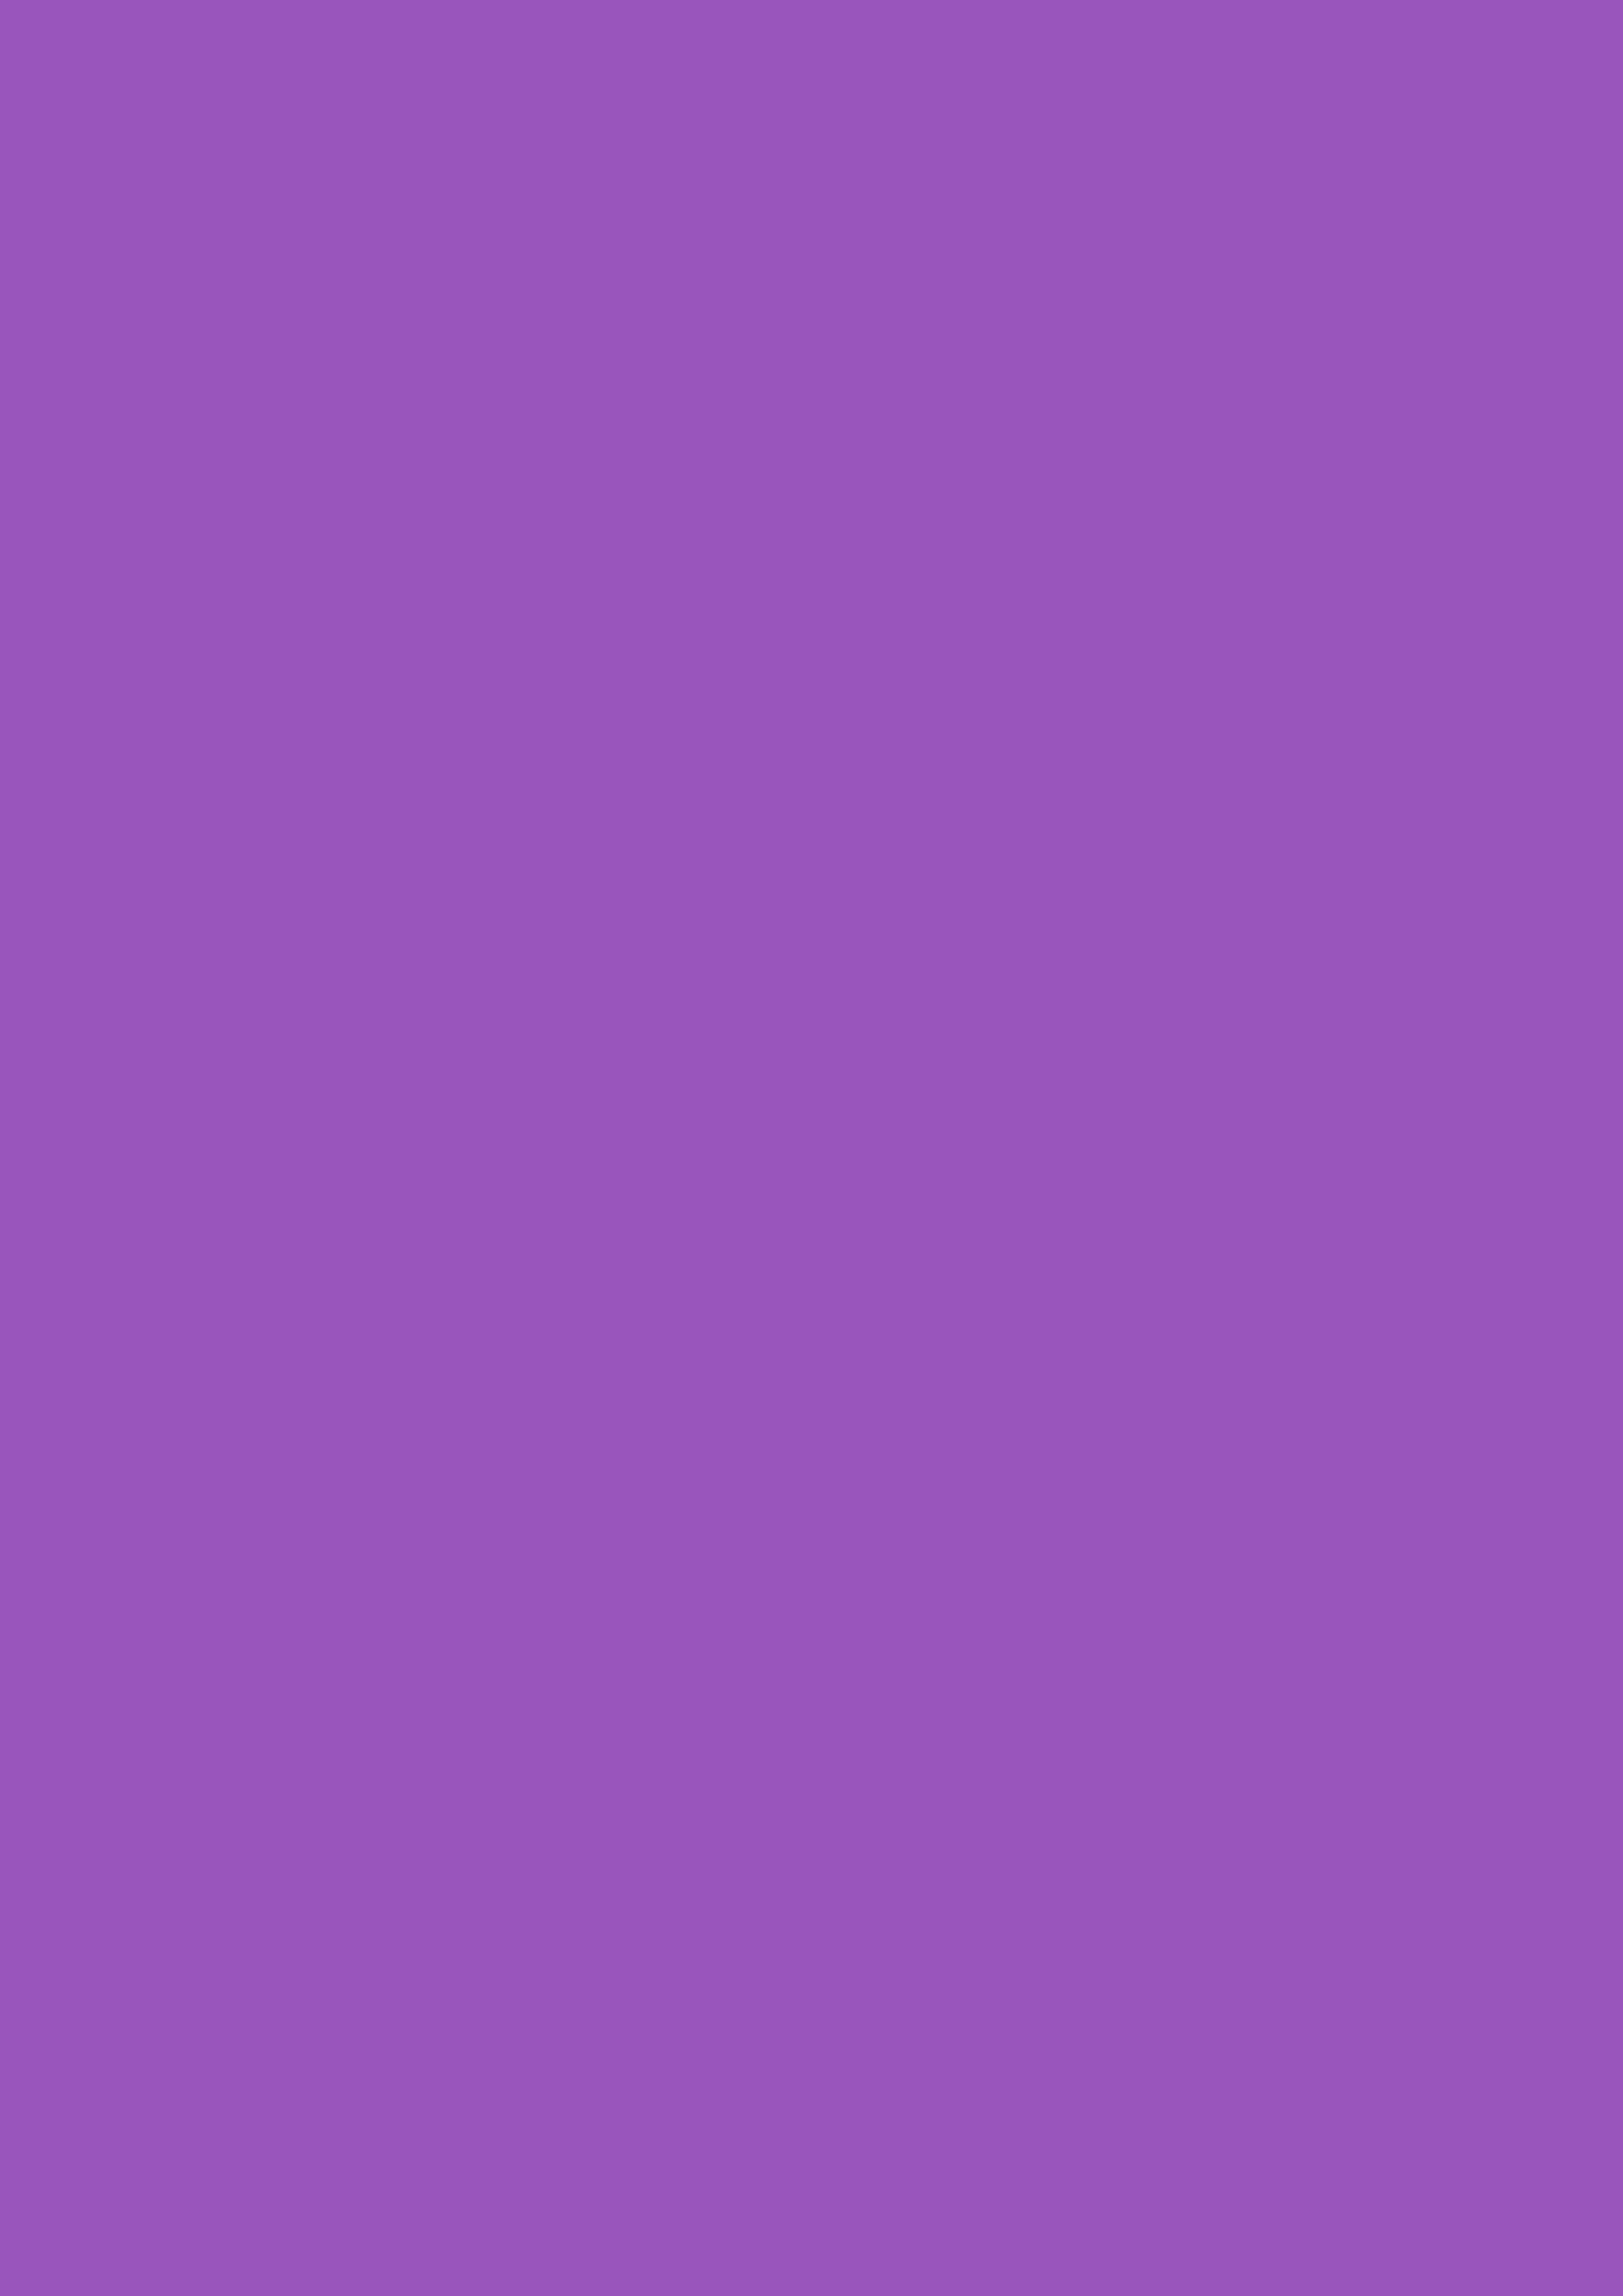 2480x3508 Deep Lilac Solid Color Background